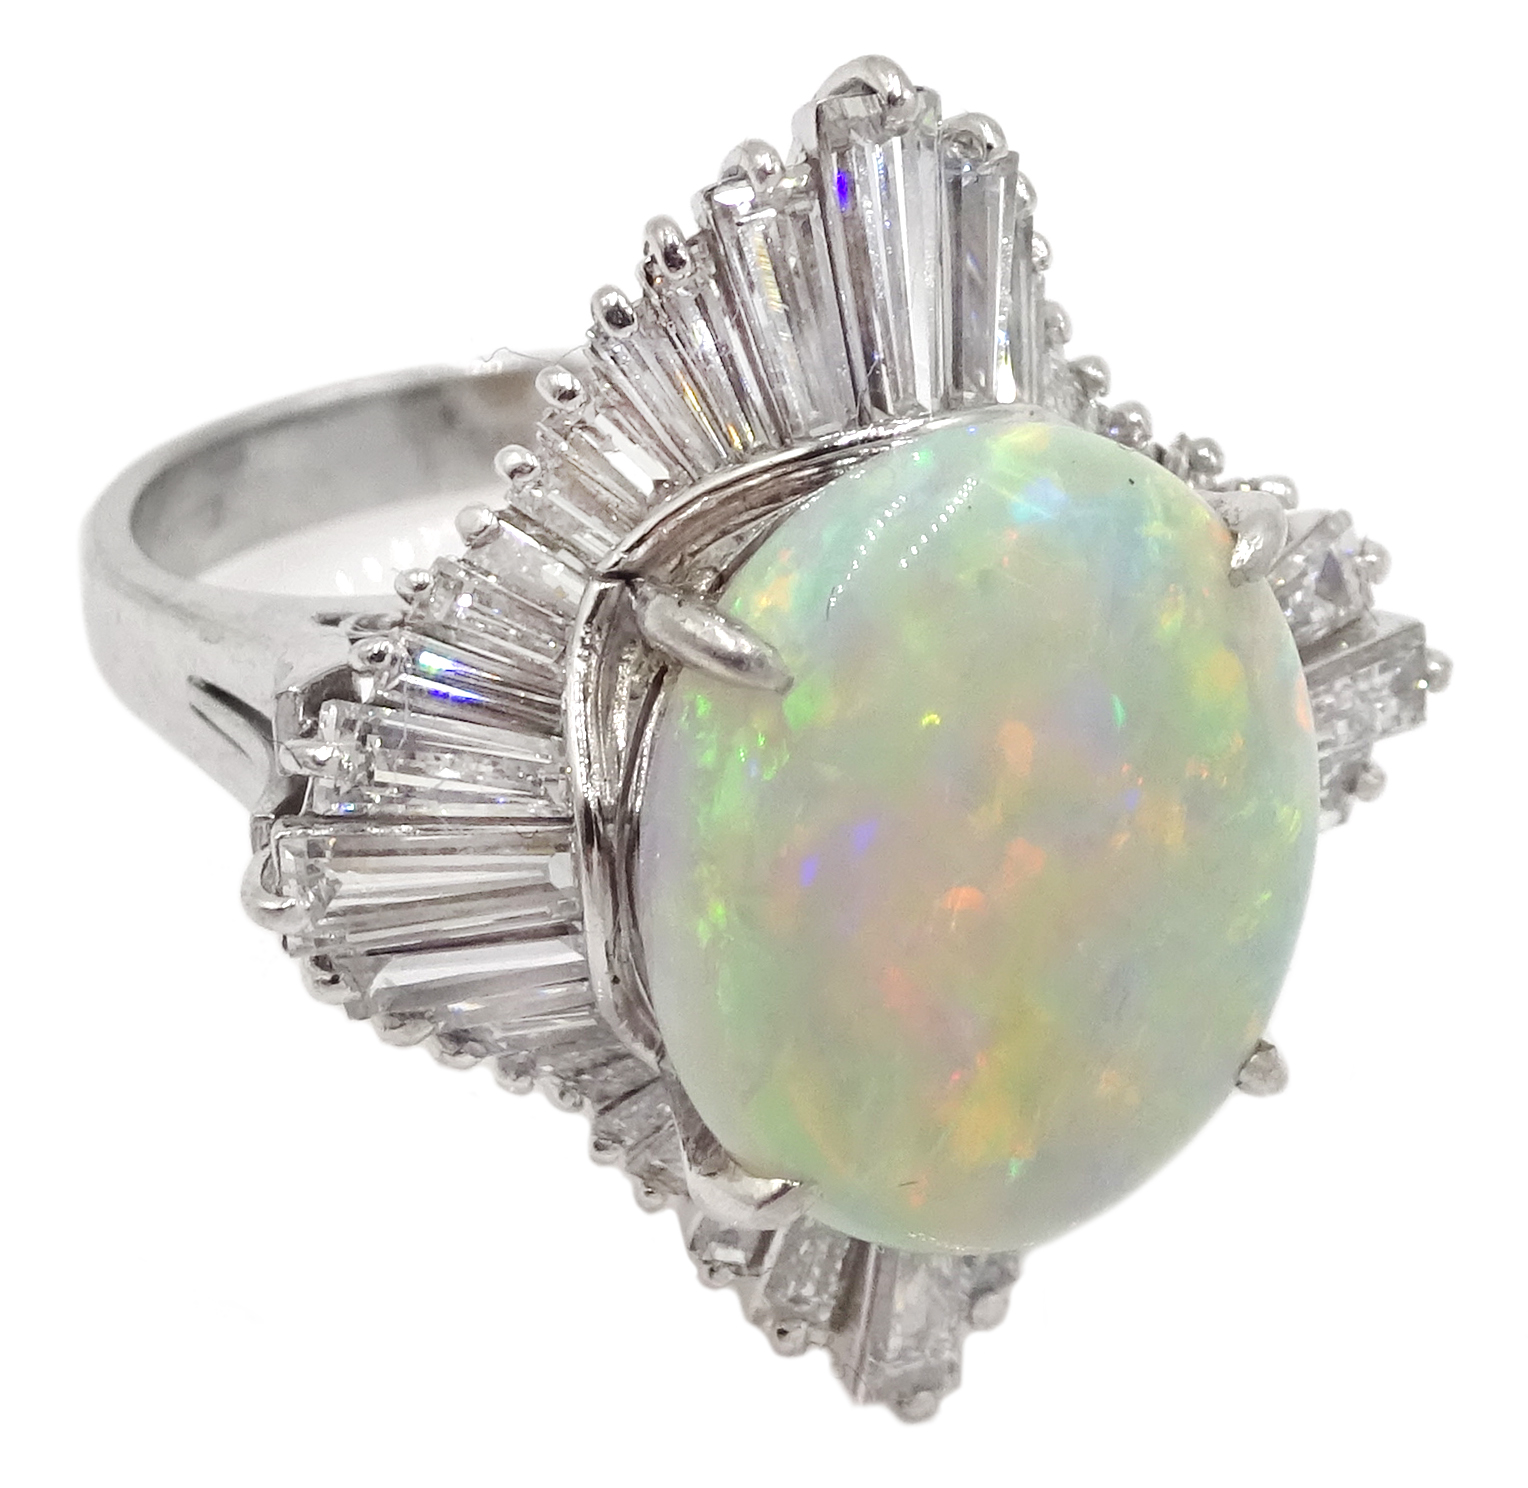 Platinum oval cabochon opal and baguette diamond ring - Image 3 of 5